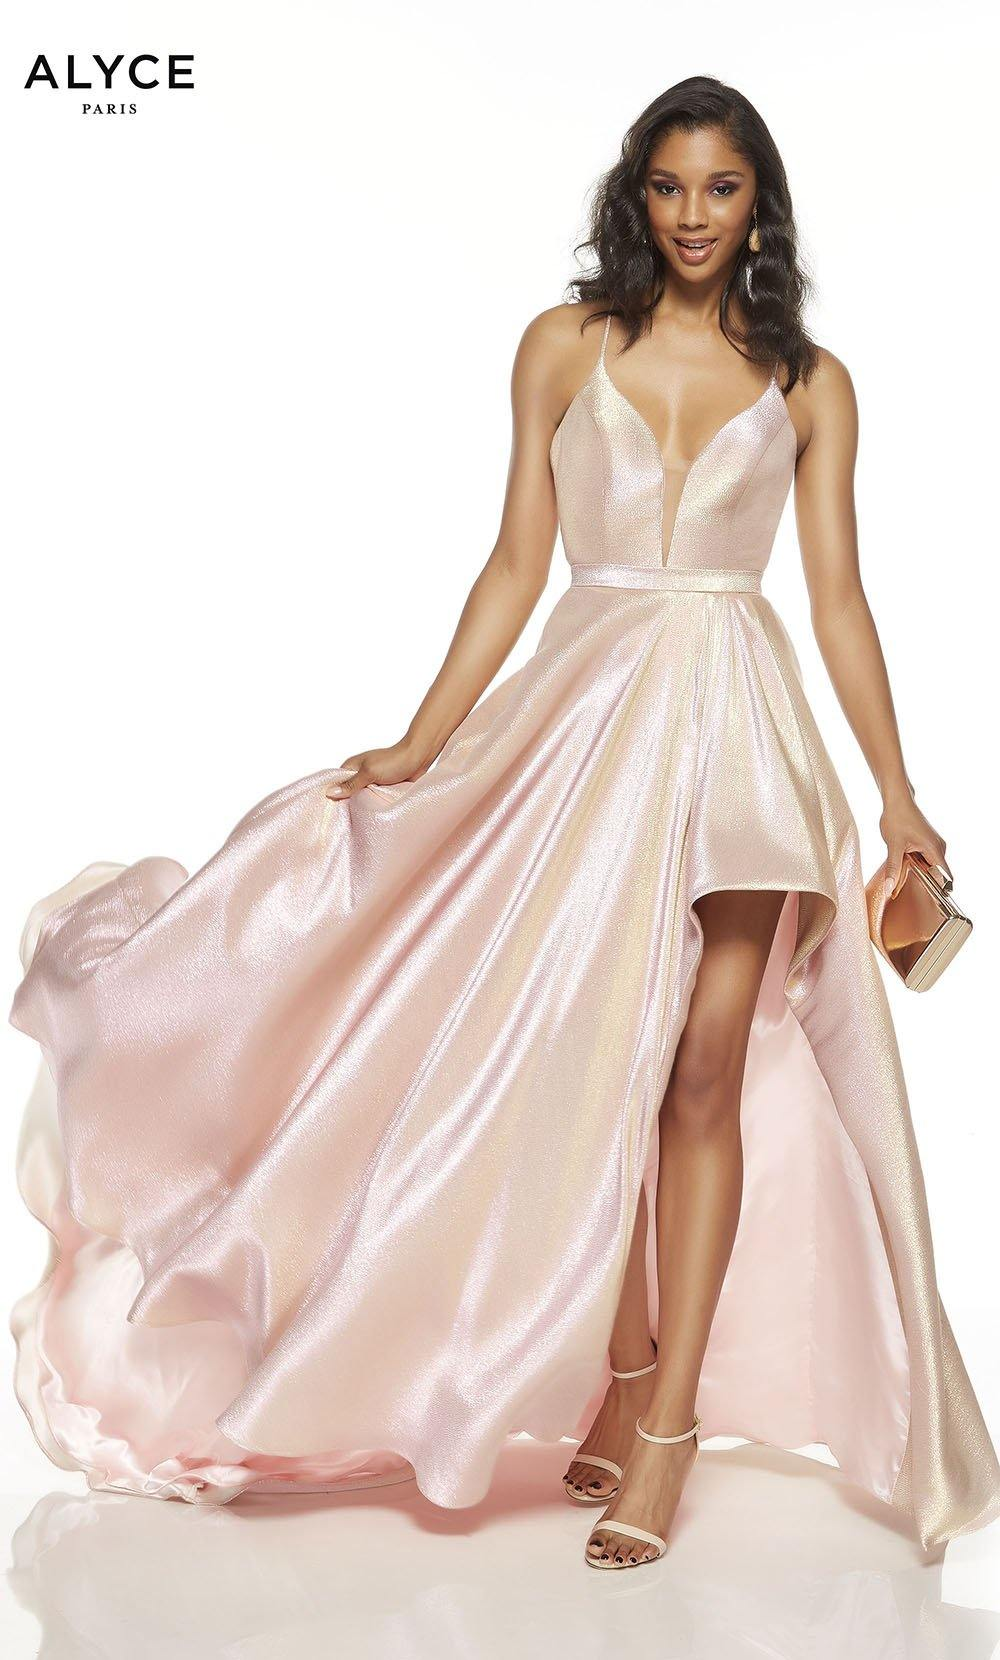 Bubble Gum Pink metallic lame prom dress with a plunging neckline and a slit